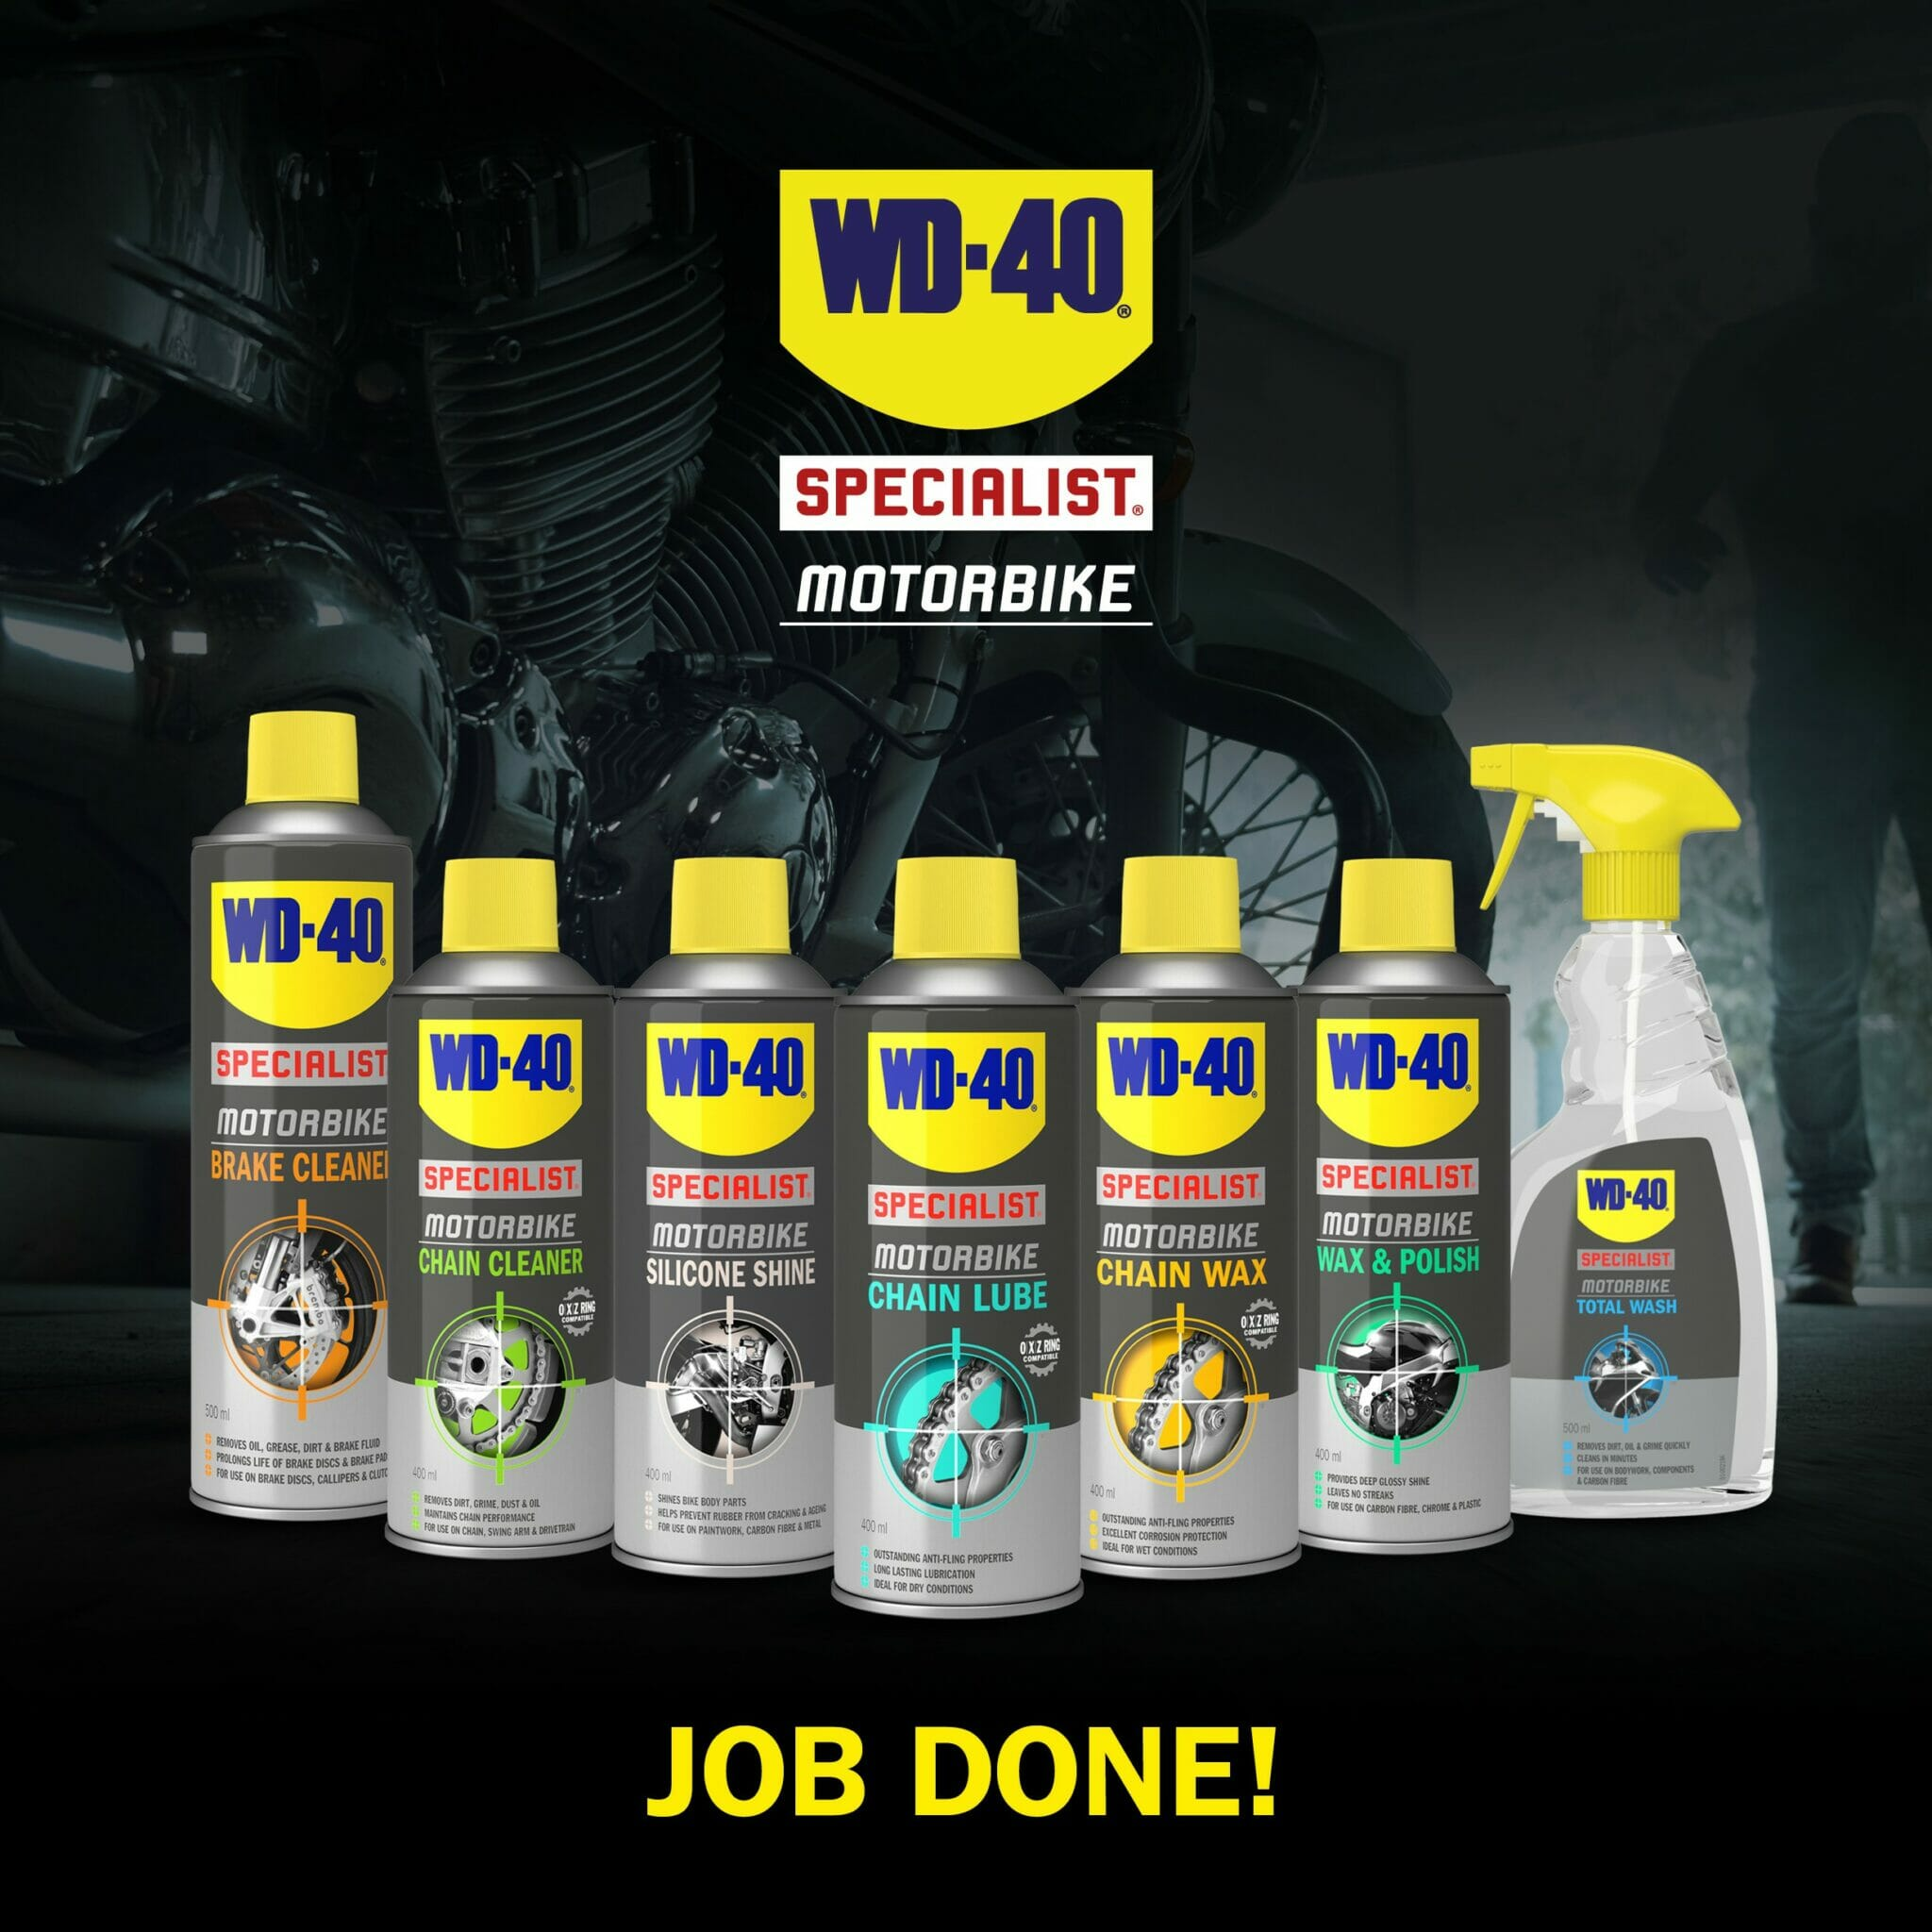 wd40 motorbike chain lube how to use part 9